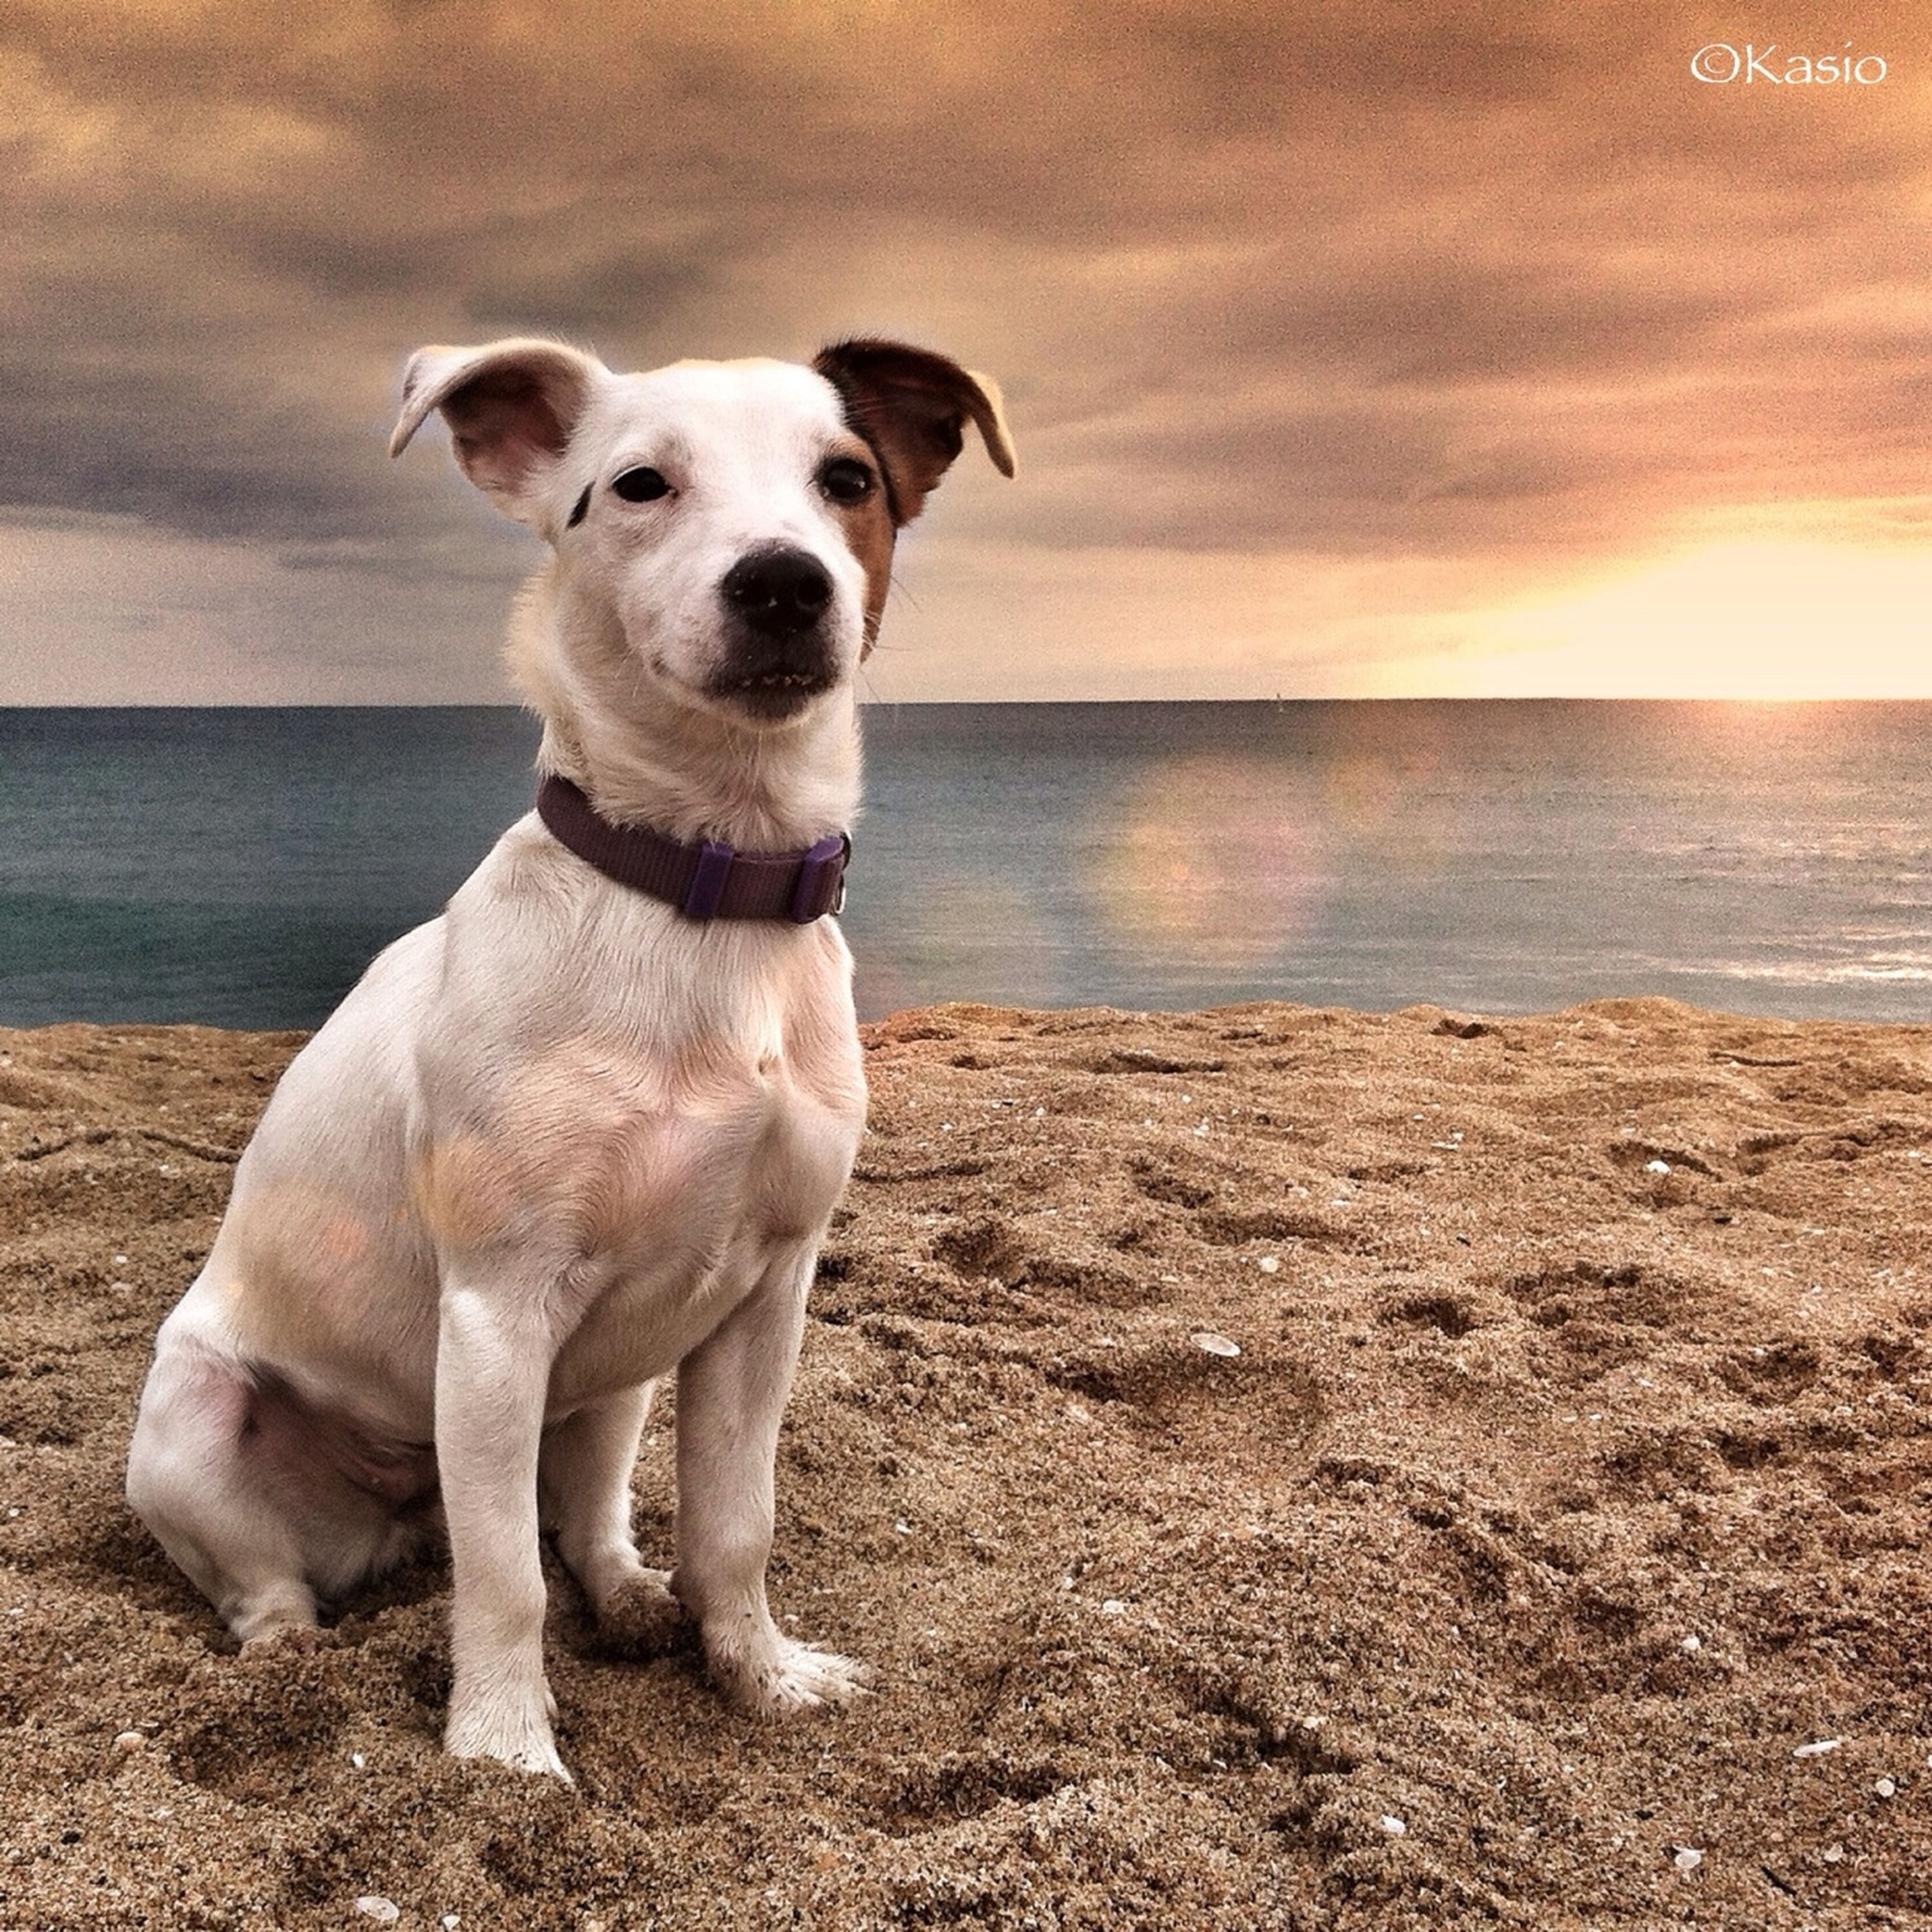 dog, domestic animals, animal themes, mammal, one animal, pets, beach, sea, horizon over water, sky, water, shore, sunset, full length, sand, standing, nature, sunlight, tranquil scene, sitting